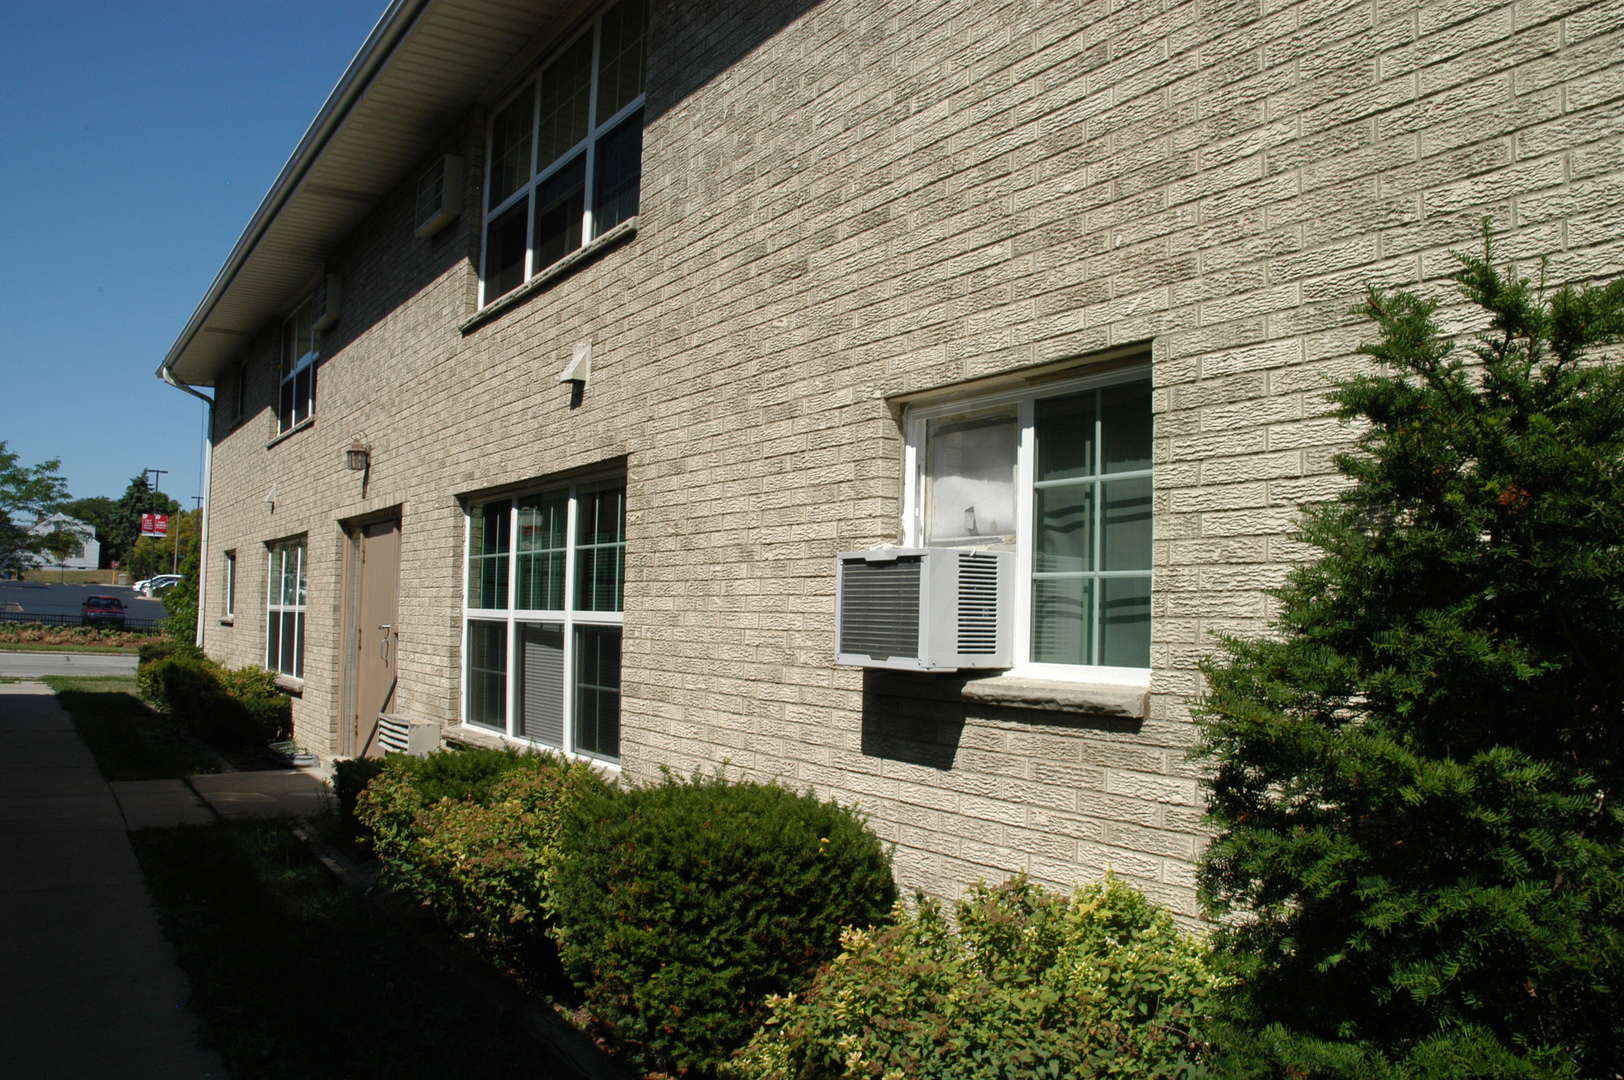 4 bedroom houses for rent in milwaukee patio screen